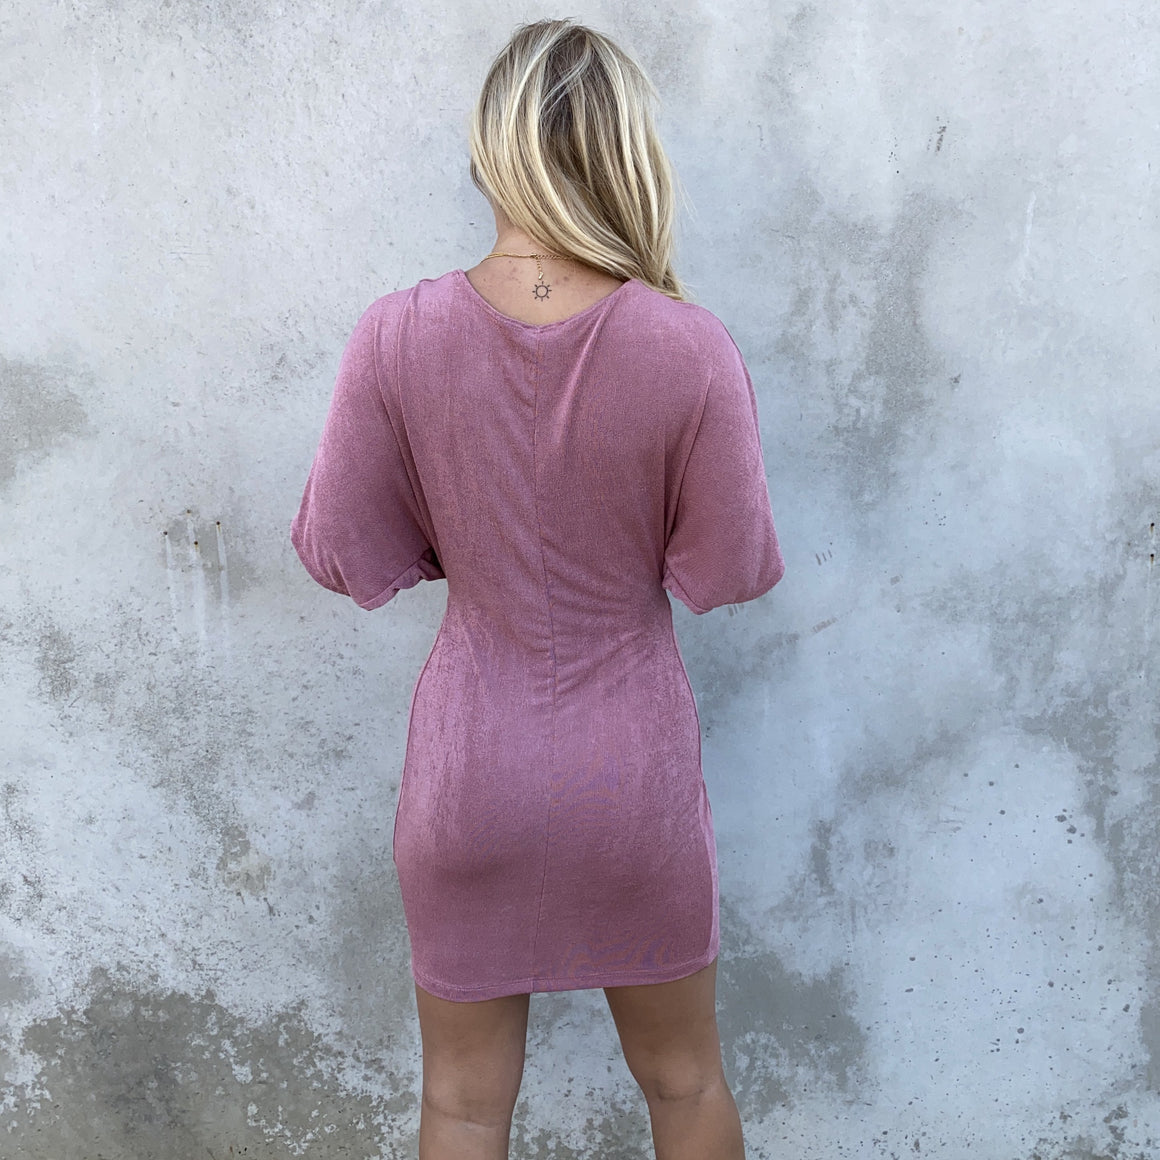 Royal Bodycon Dress in Mauve - Dainty Hooligan